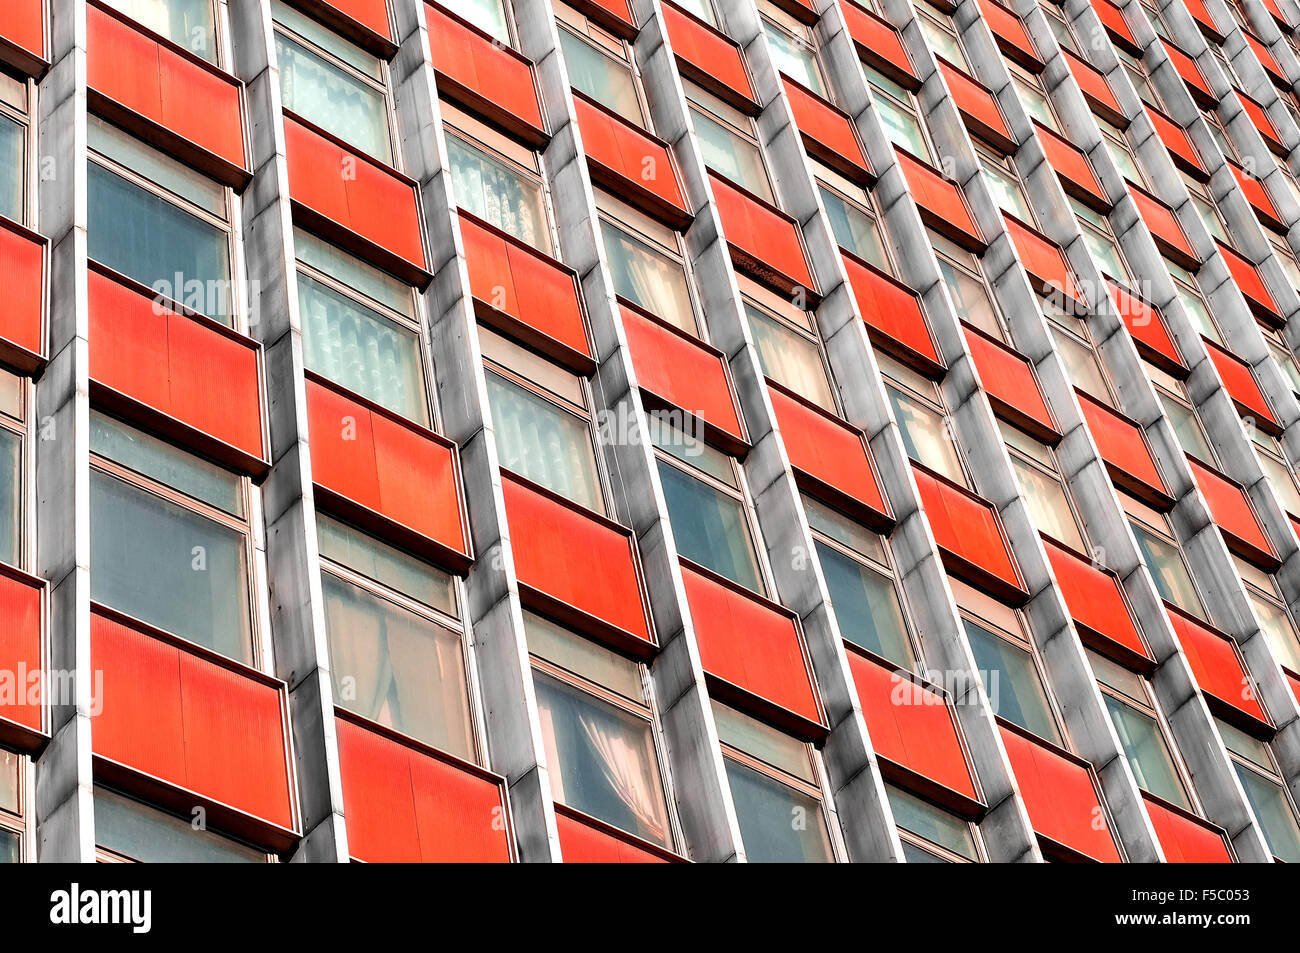 Multi-story office building with terracotta panels - Stock Image